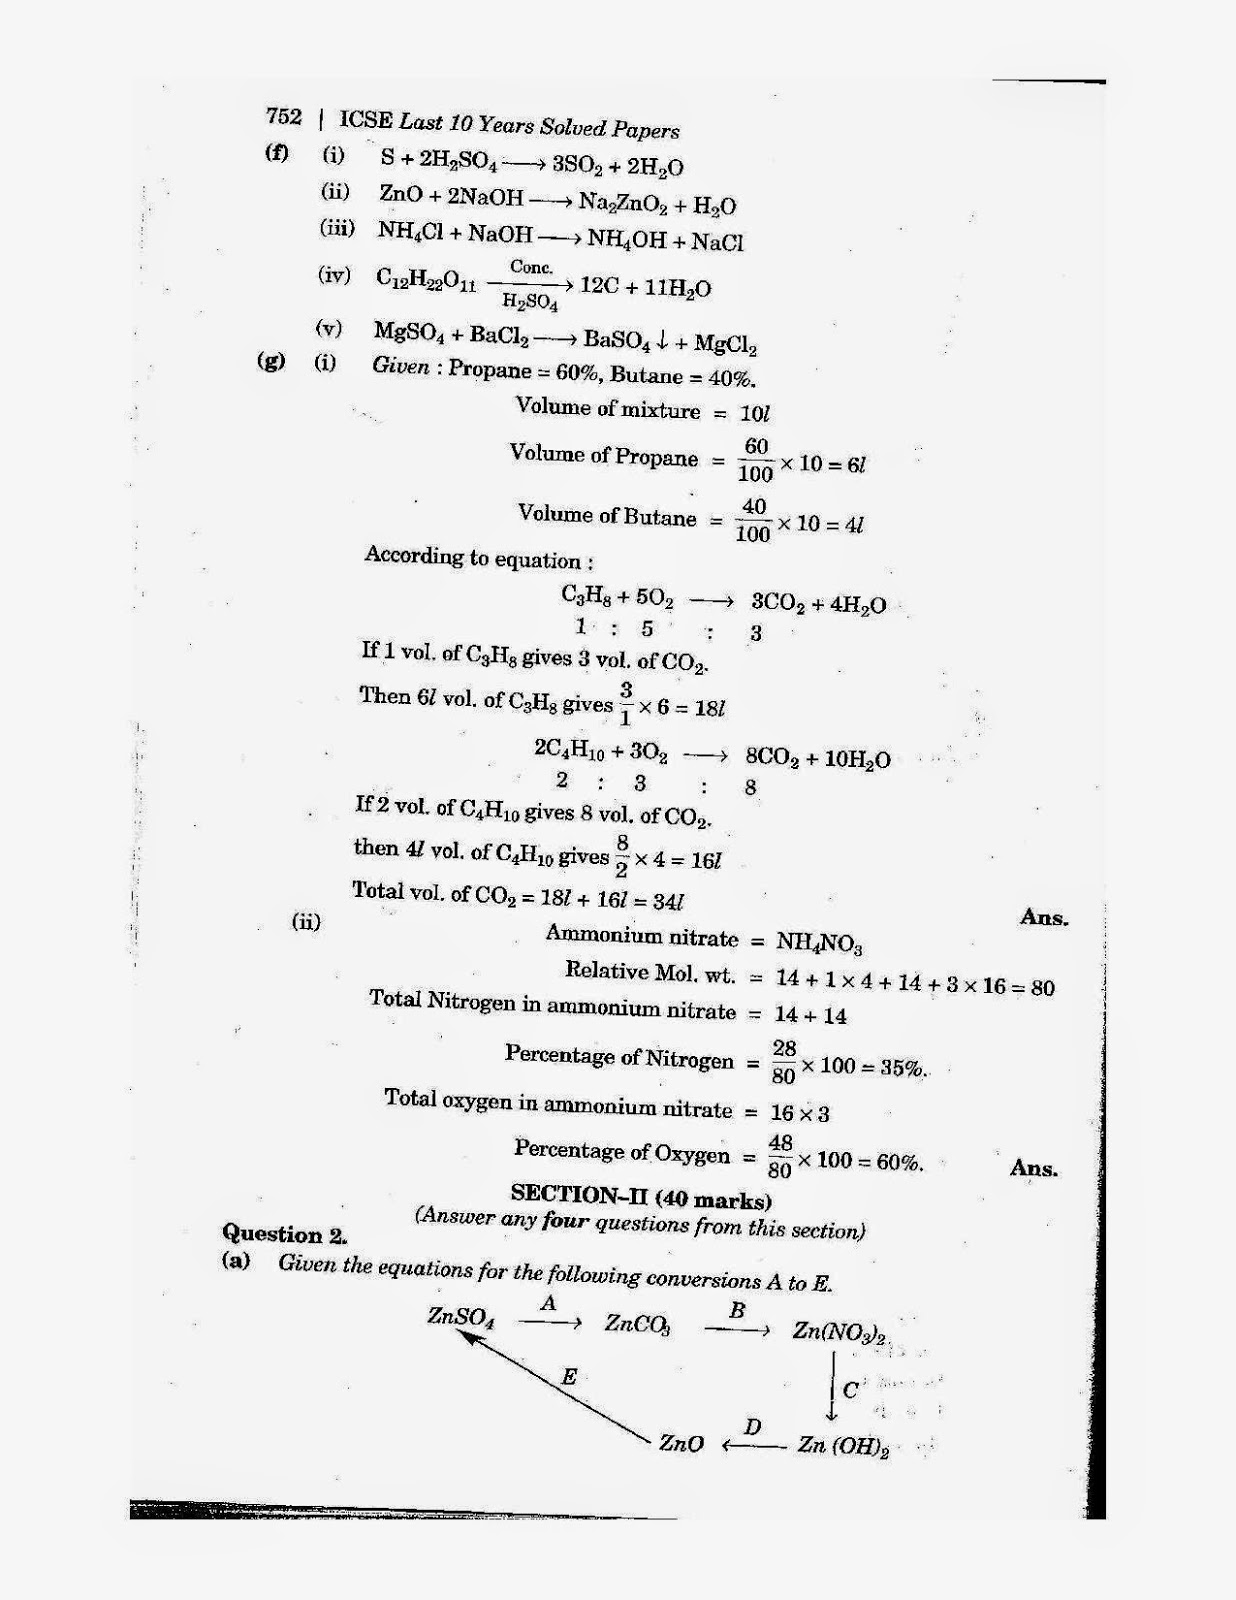 icse class 10th chemistry solved question paper 2010